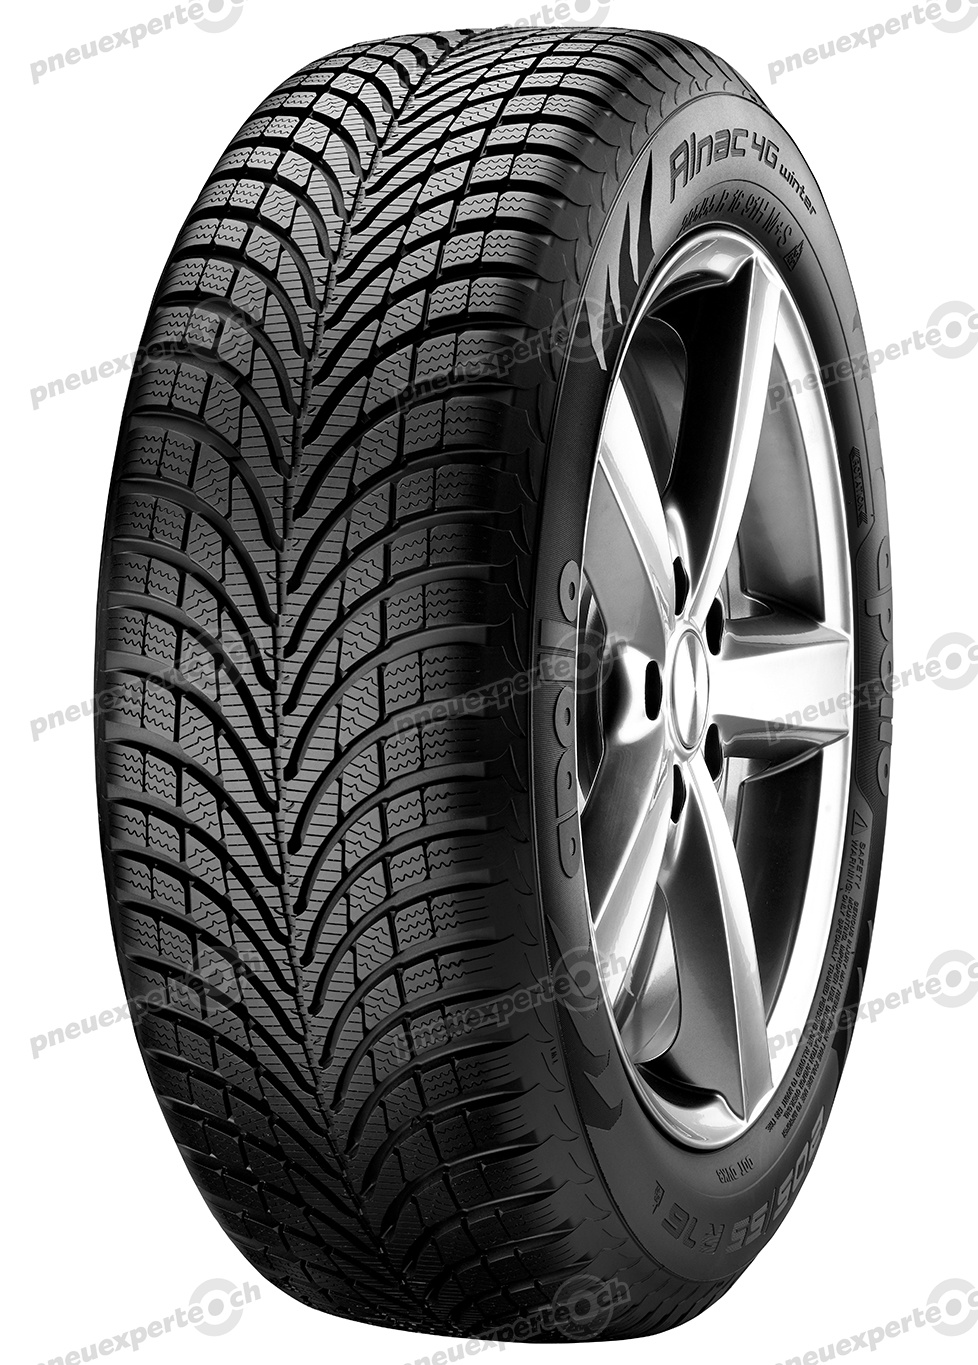 205/55 R16 91T Alnac 4 G Winter  Alnac 4 G Winter